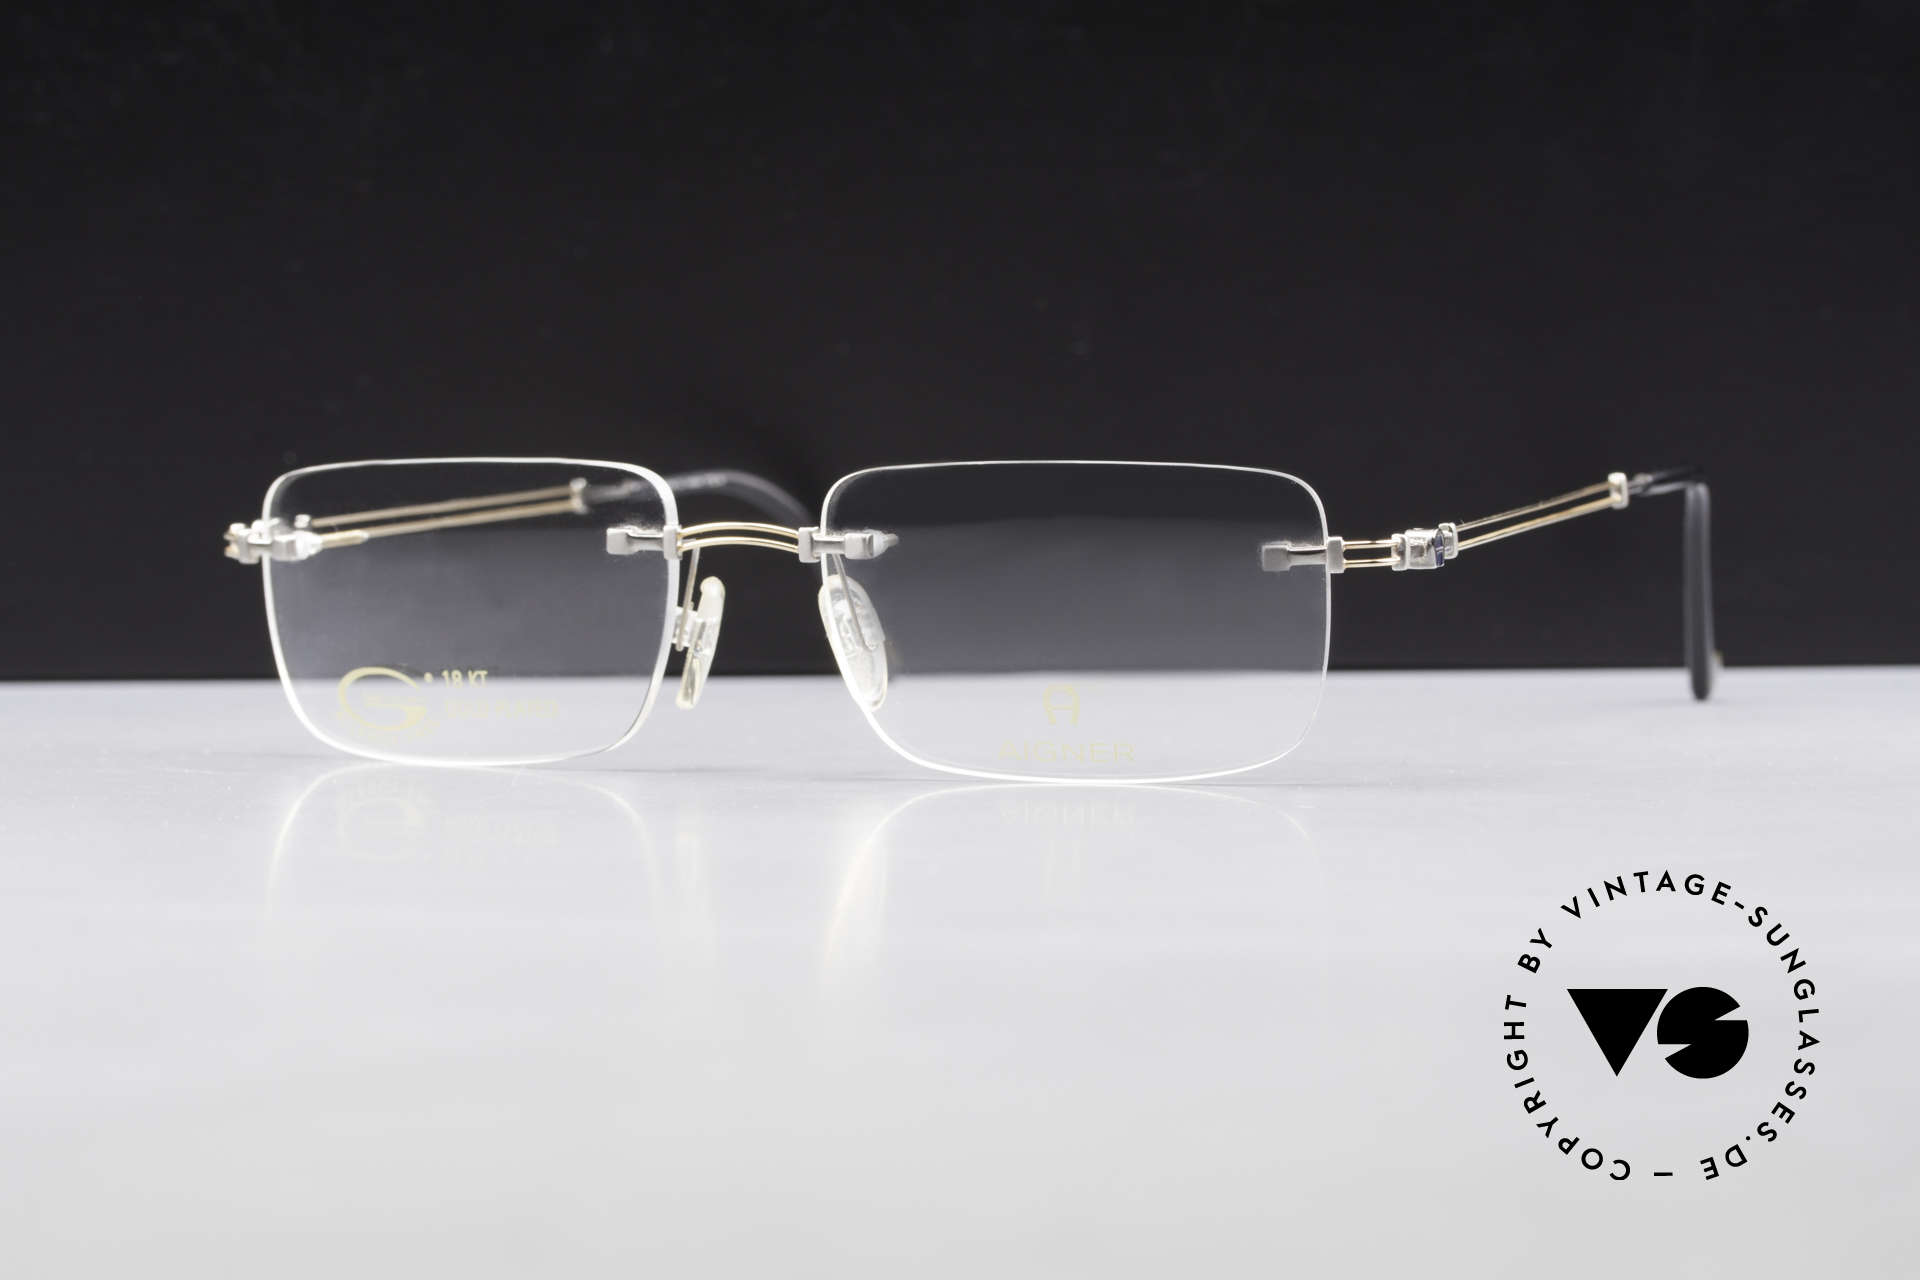 Aigner EA496 Rimless 90's Vintage Glasses, top-notch quality and very pleasant to wear; lightweight, Made for Men